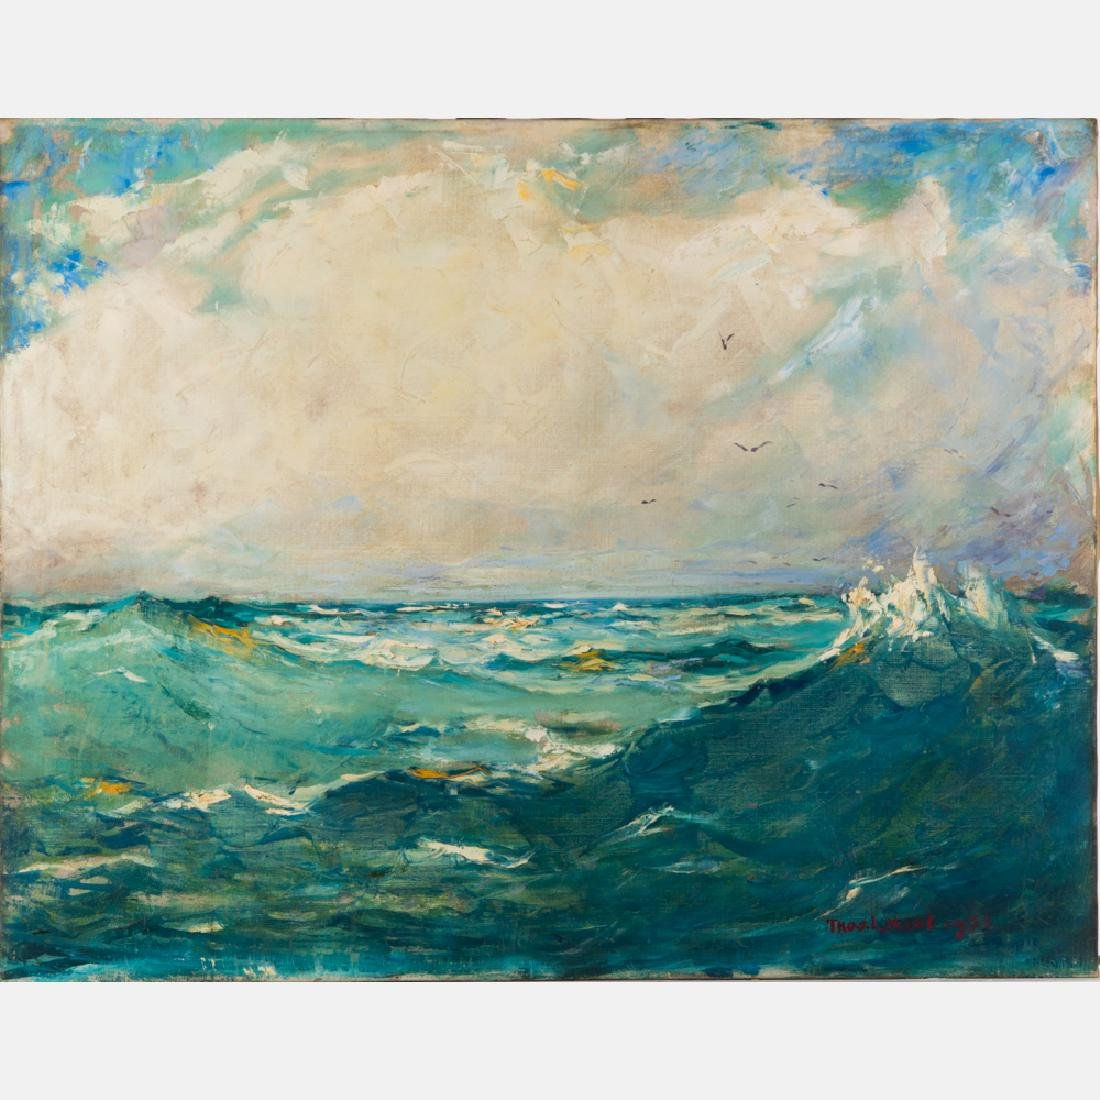 Thomas Lorraine Hunt (1882-1938) Seascape, Oil on